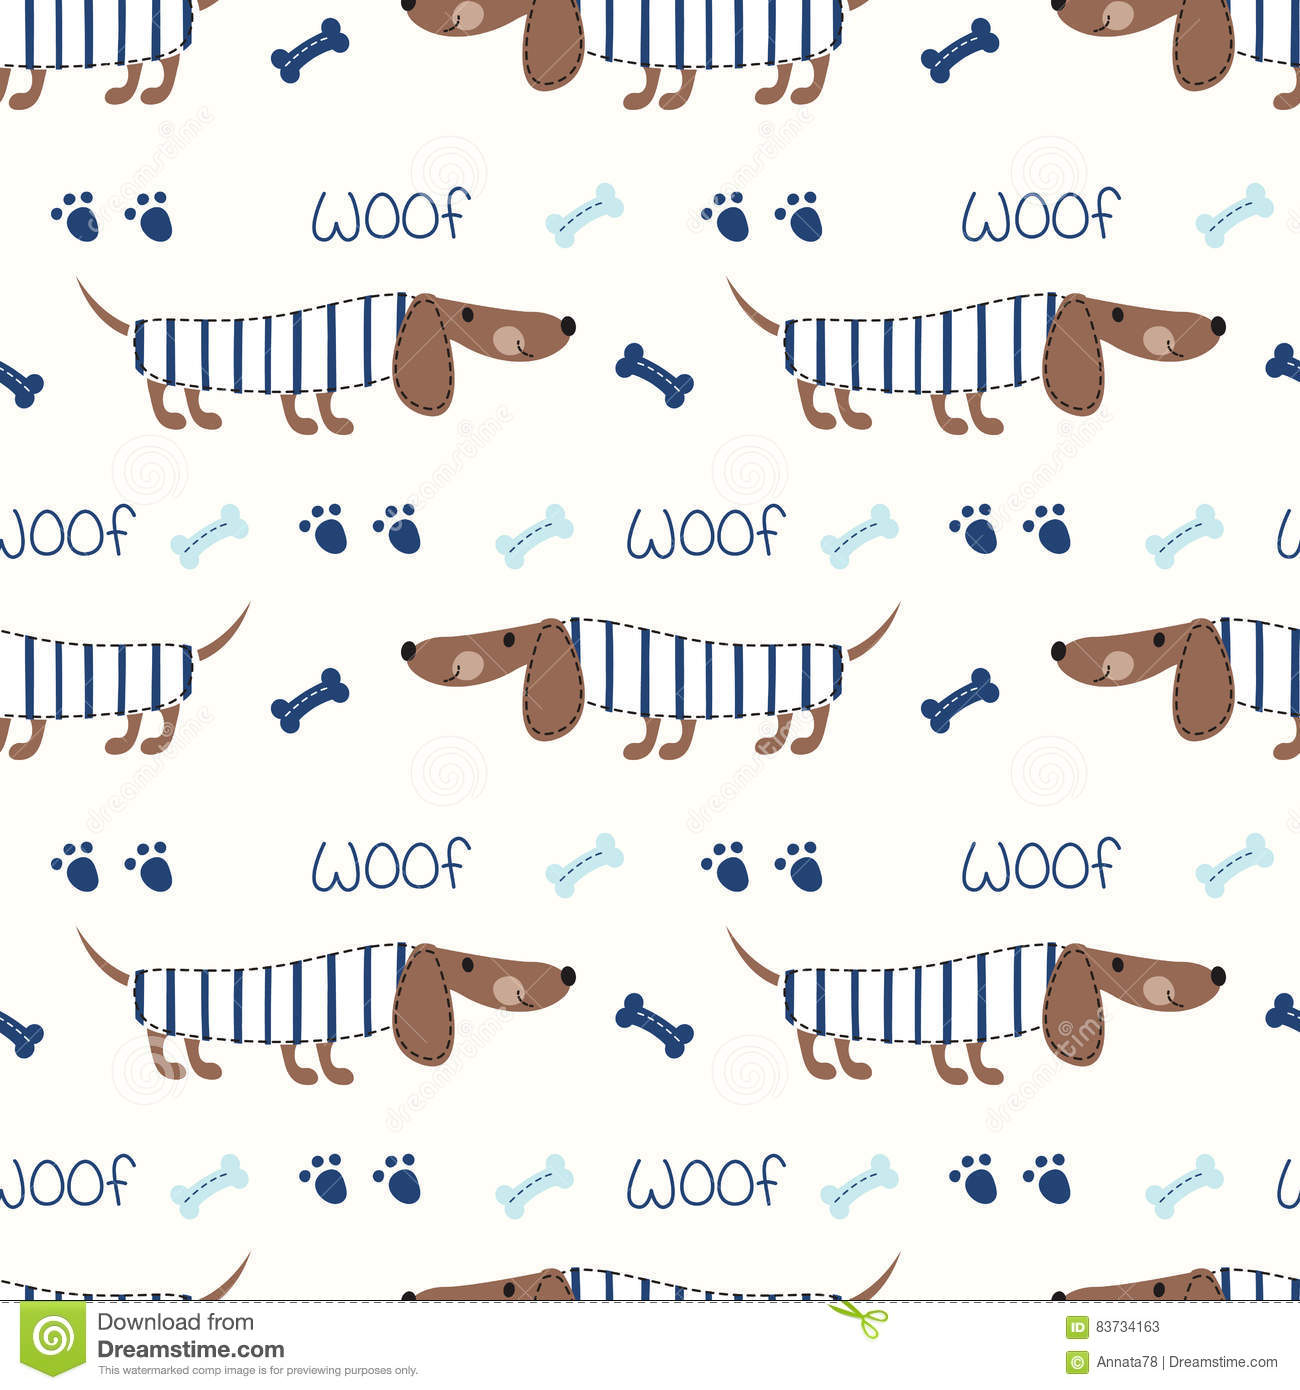 Scrapbook paper dogs - Seamless Pattern With Cute Dogs And Bones